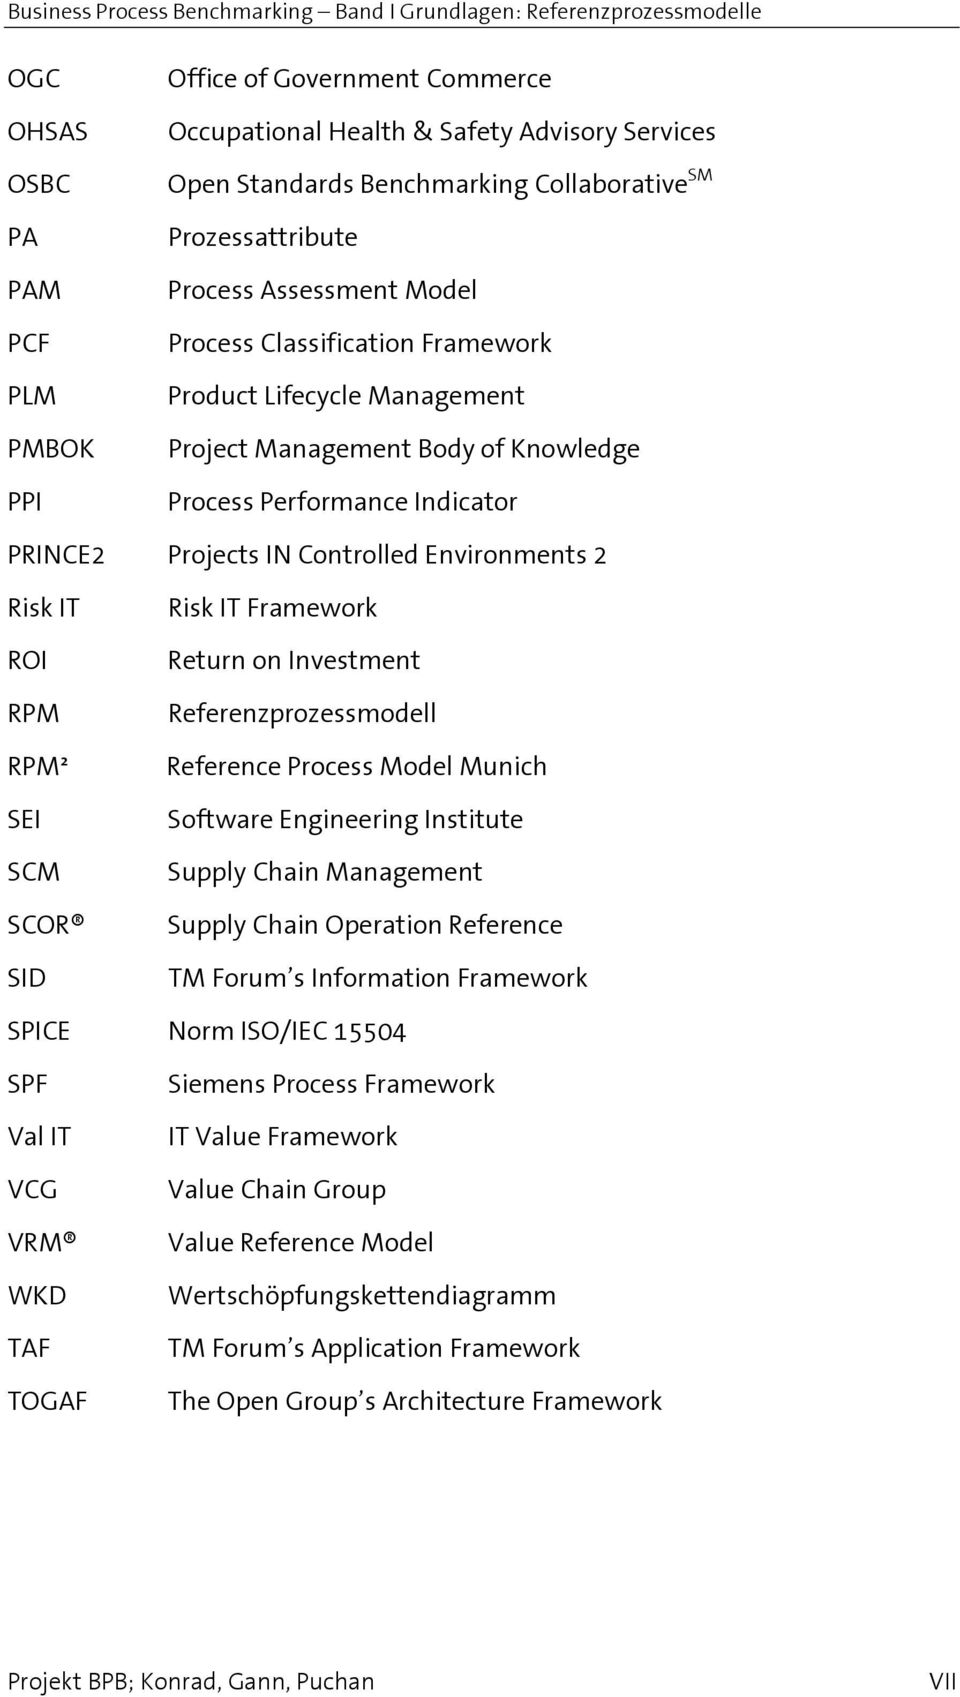 RPM² SEI SCM SCOR SID Risk IT Framework Return on Investment Referenzprozessmodell Reference Process Model Munich Software Engineering Institute Supply Chain Management Supply Chain Operation